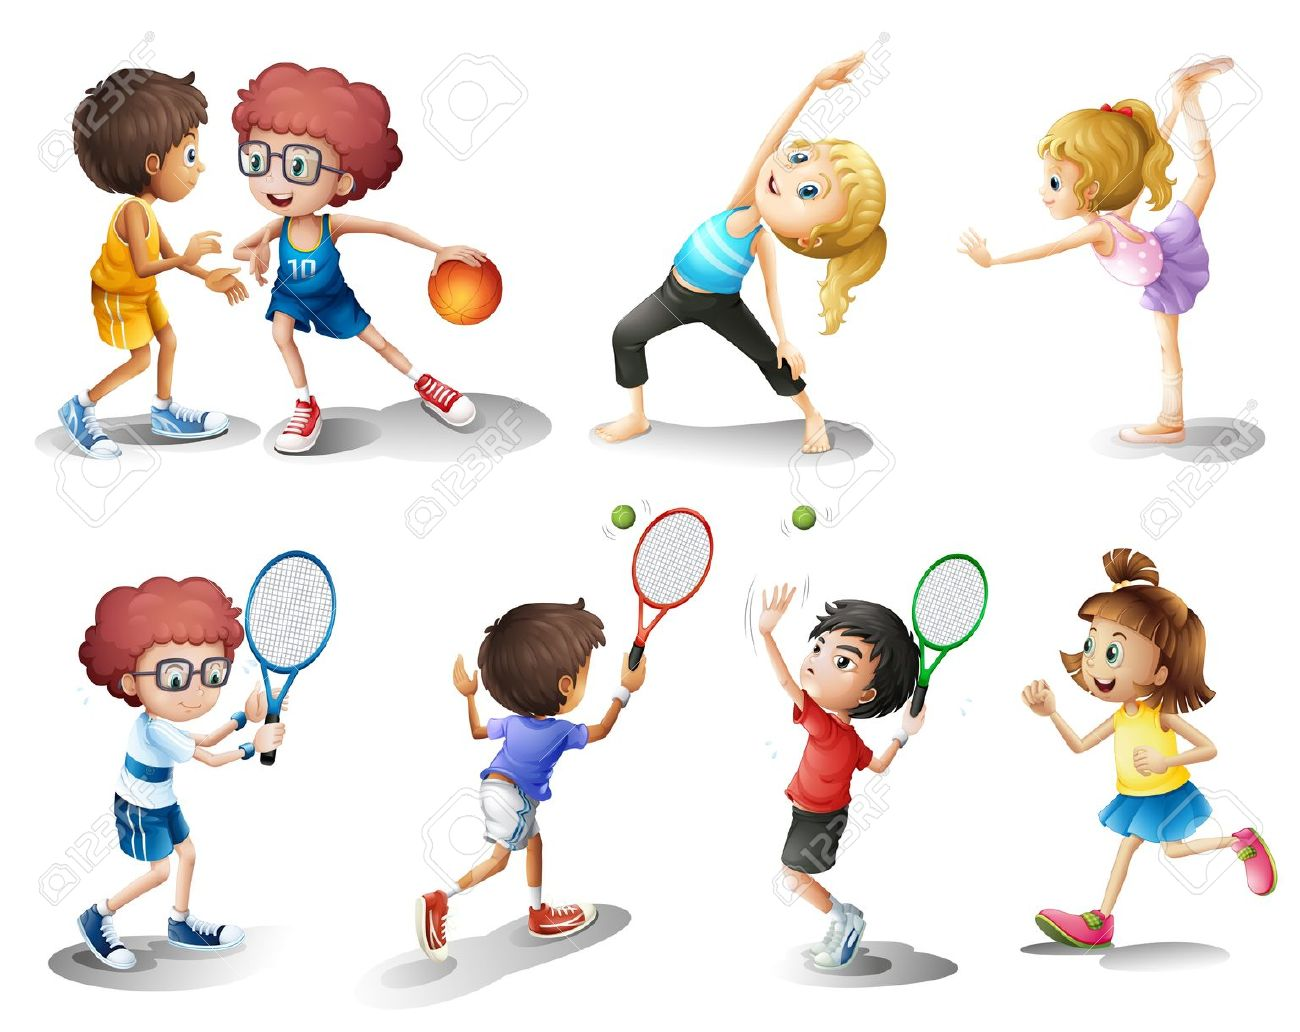 http://previews.123rf.com/images/iimages/iimages1302/iimages130201834/18005073-Illustration-of-kids-exercising-and-playing-different-sports-on-a-white-background-Stock-Vector.jpg